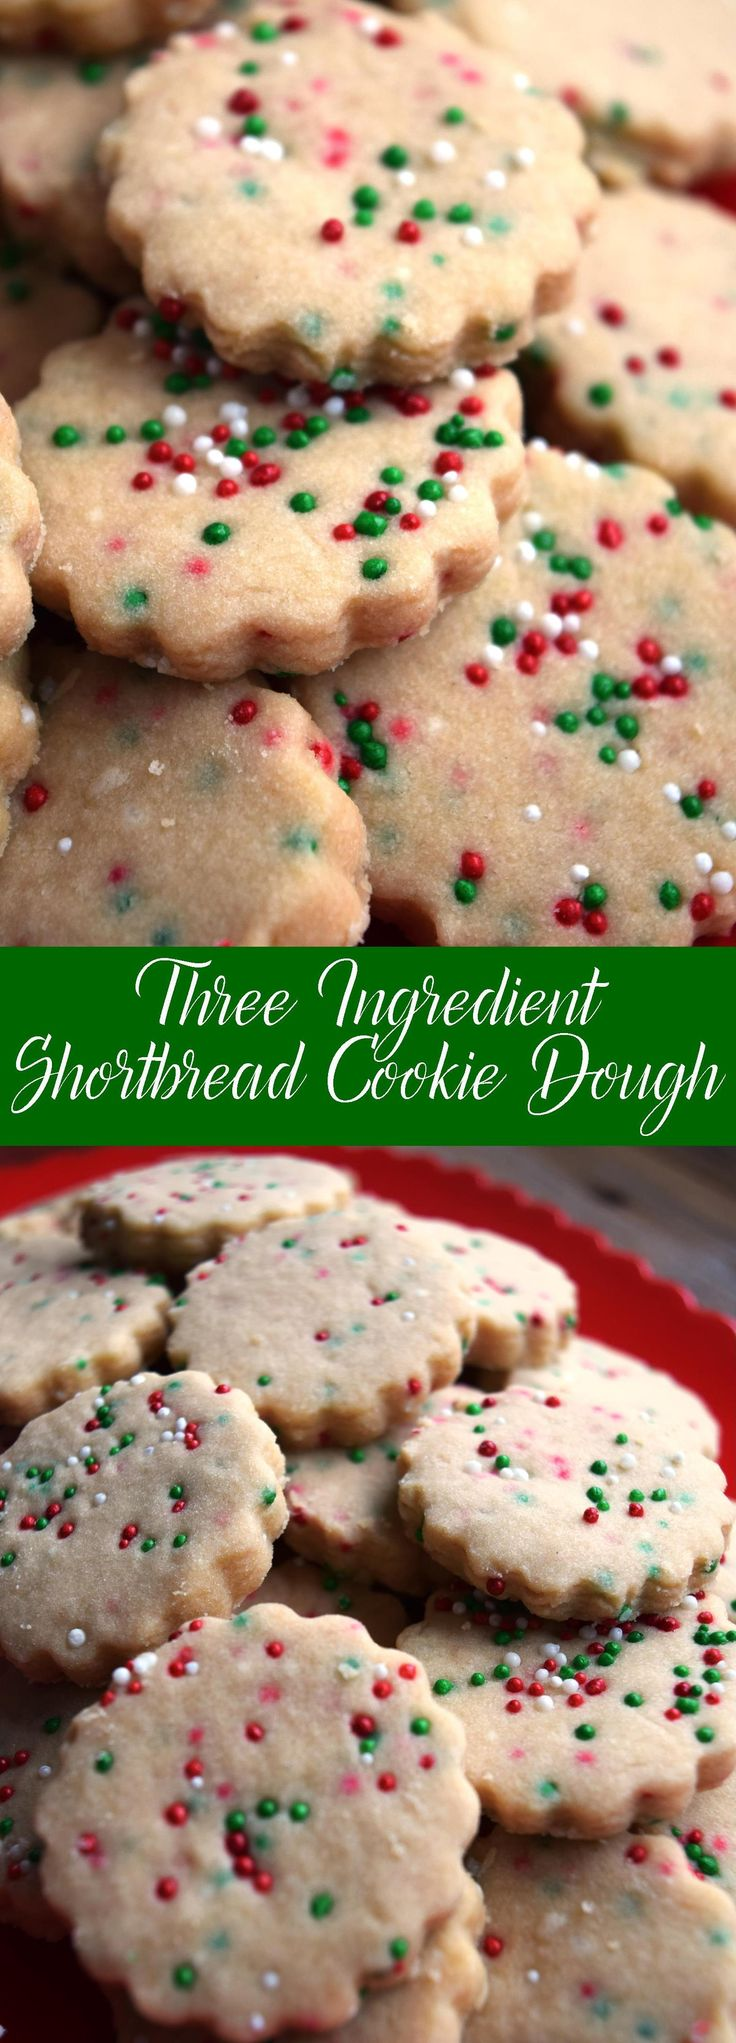 A good shortbread recipe is hard to come by, even though there's many different varieties out there. What I mean by a good shortbread recipe is one that is not too difficult to master, takes very little time, is inexpensive, and holds its shape when baked. This recipe has all of that, plus one added …